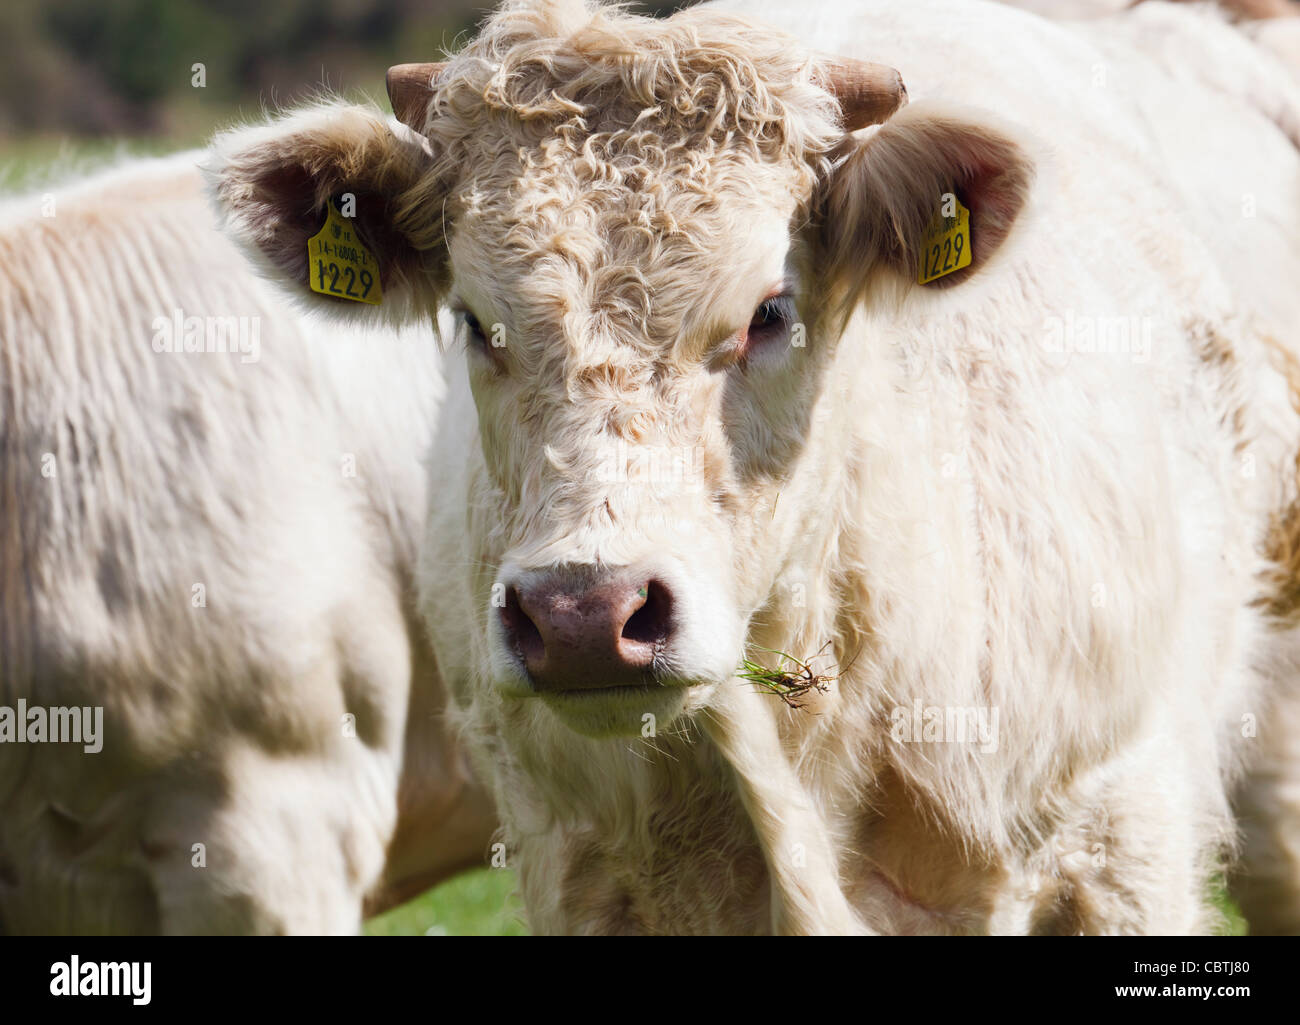 Animal wearing livestock identification tag in each ear, near Ballynacarriga, County Cork, Republic of Ireland. - Stock Image